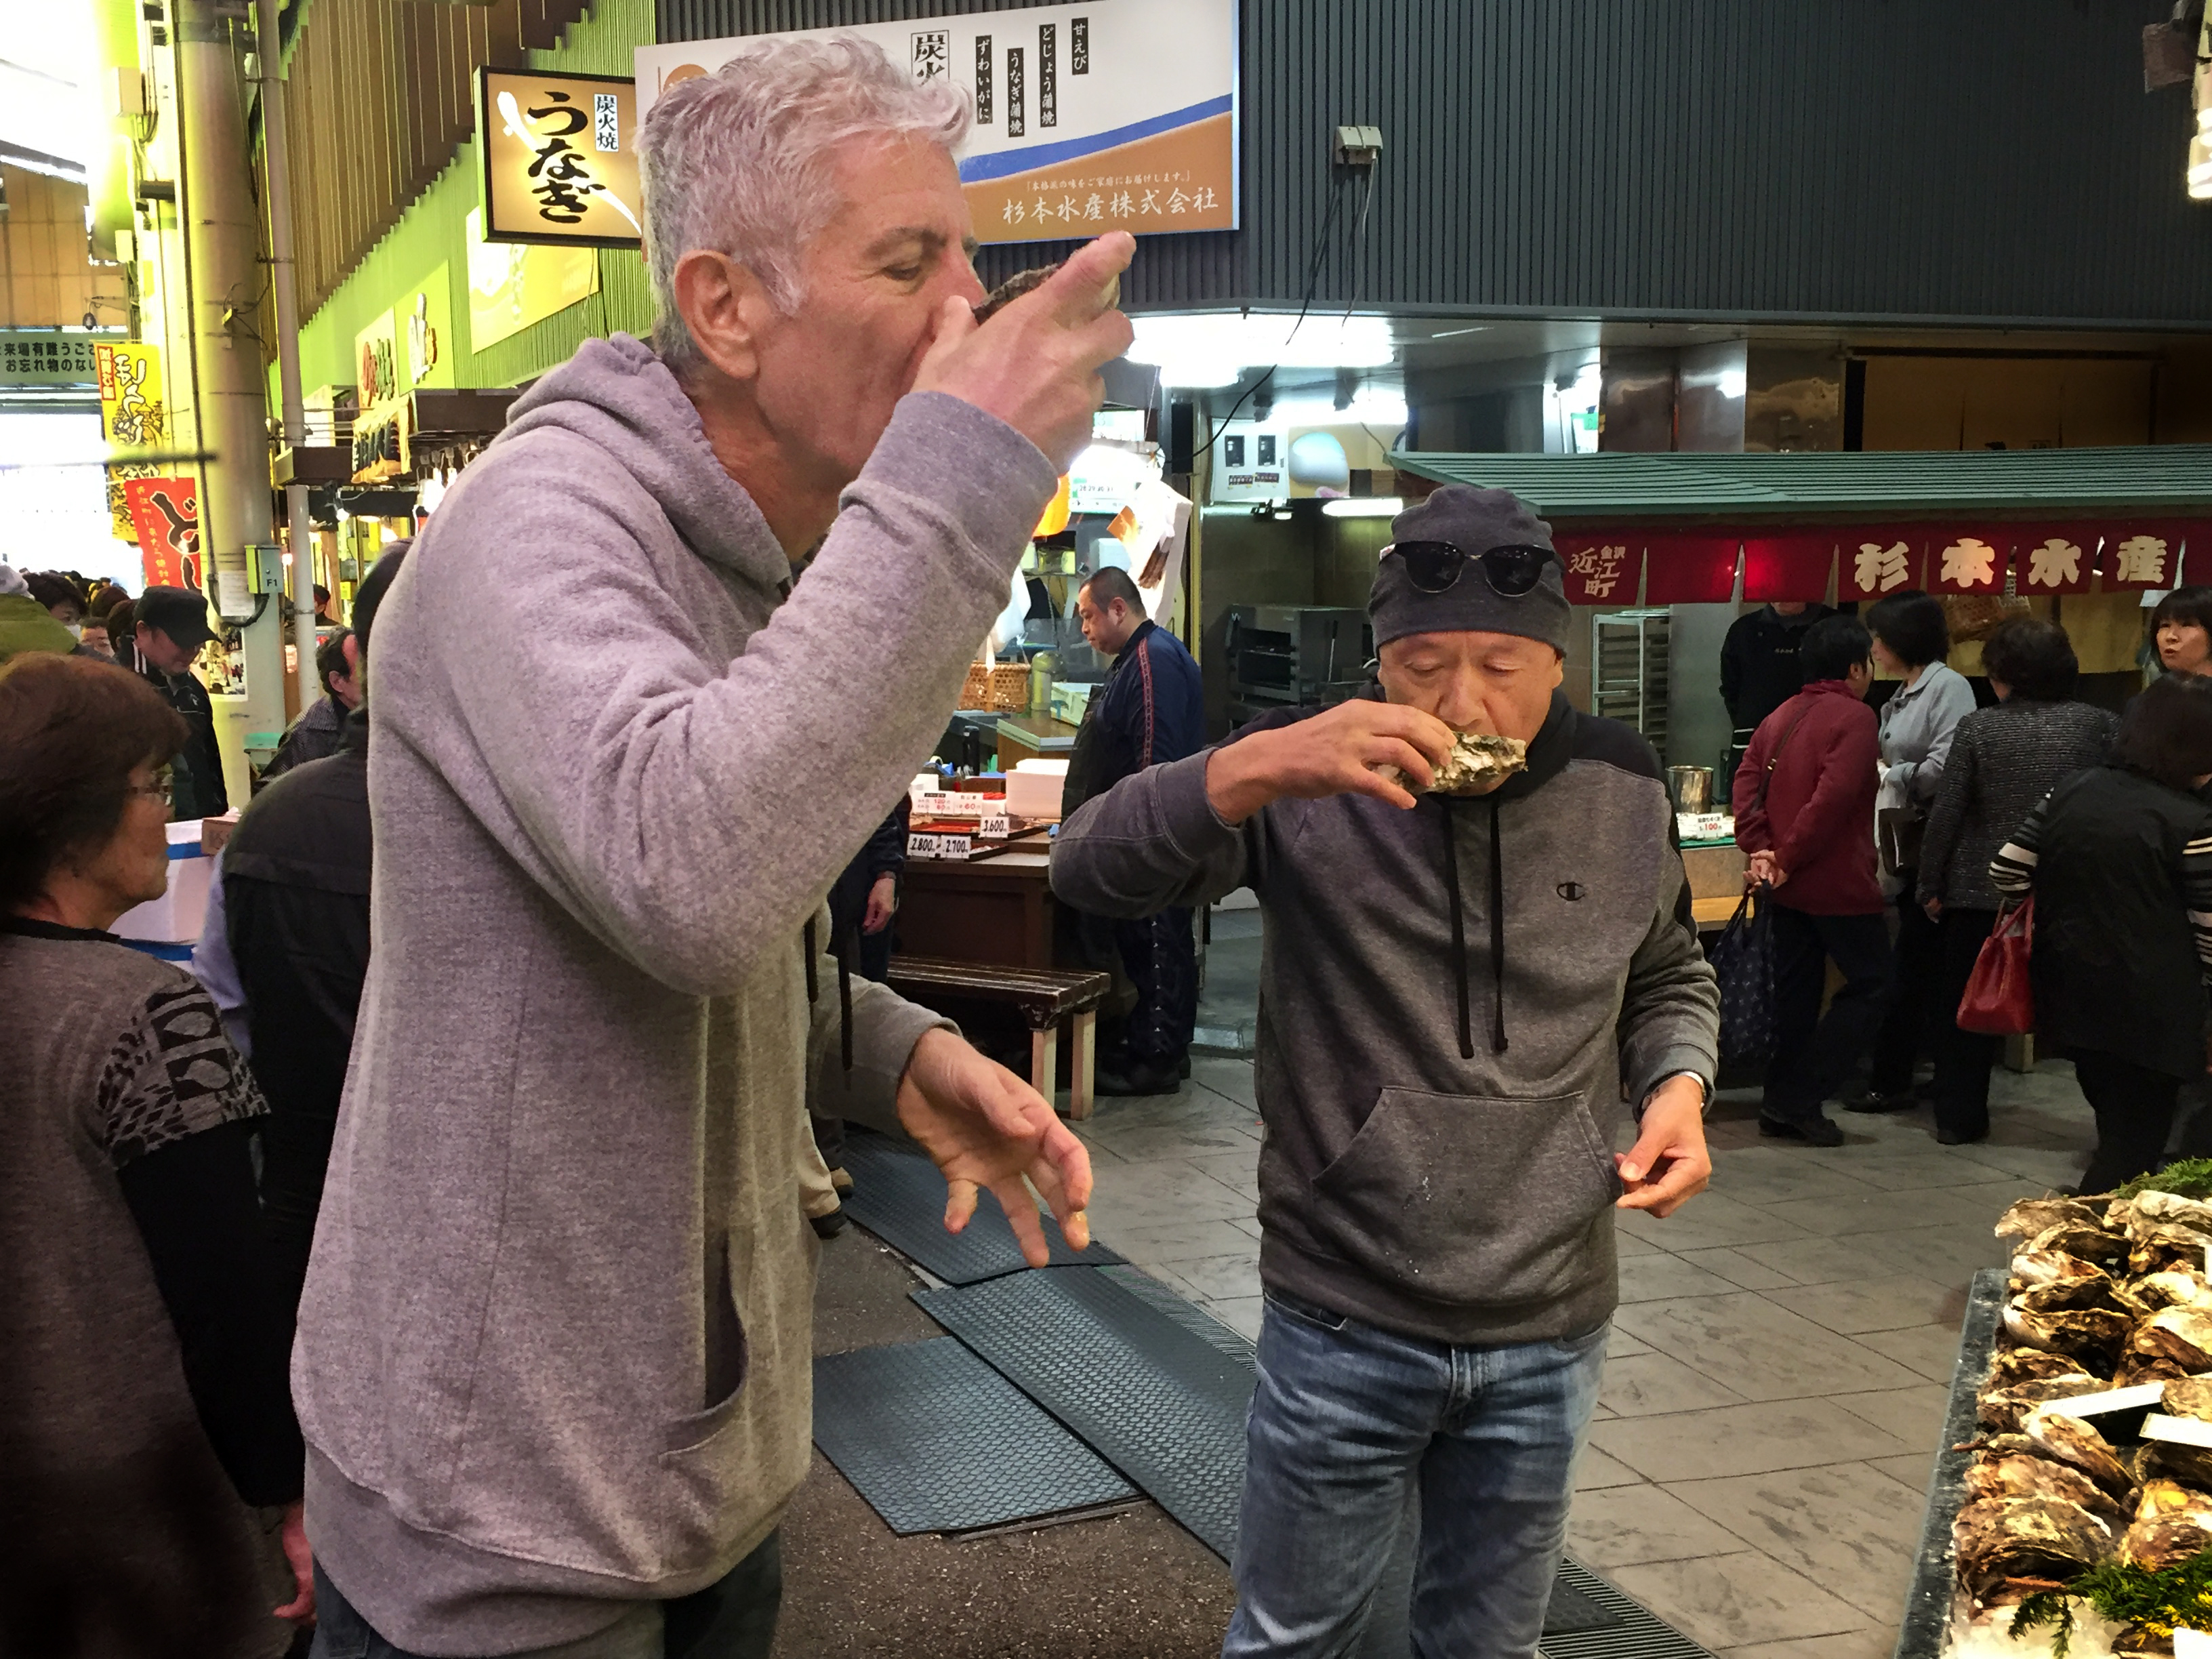 Anthony Bourdain 'Parts Unknown' in Japan: Just the One-Liners